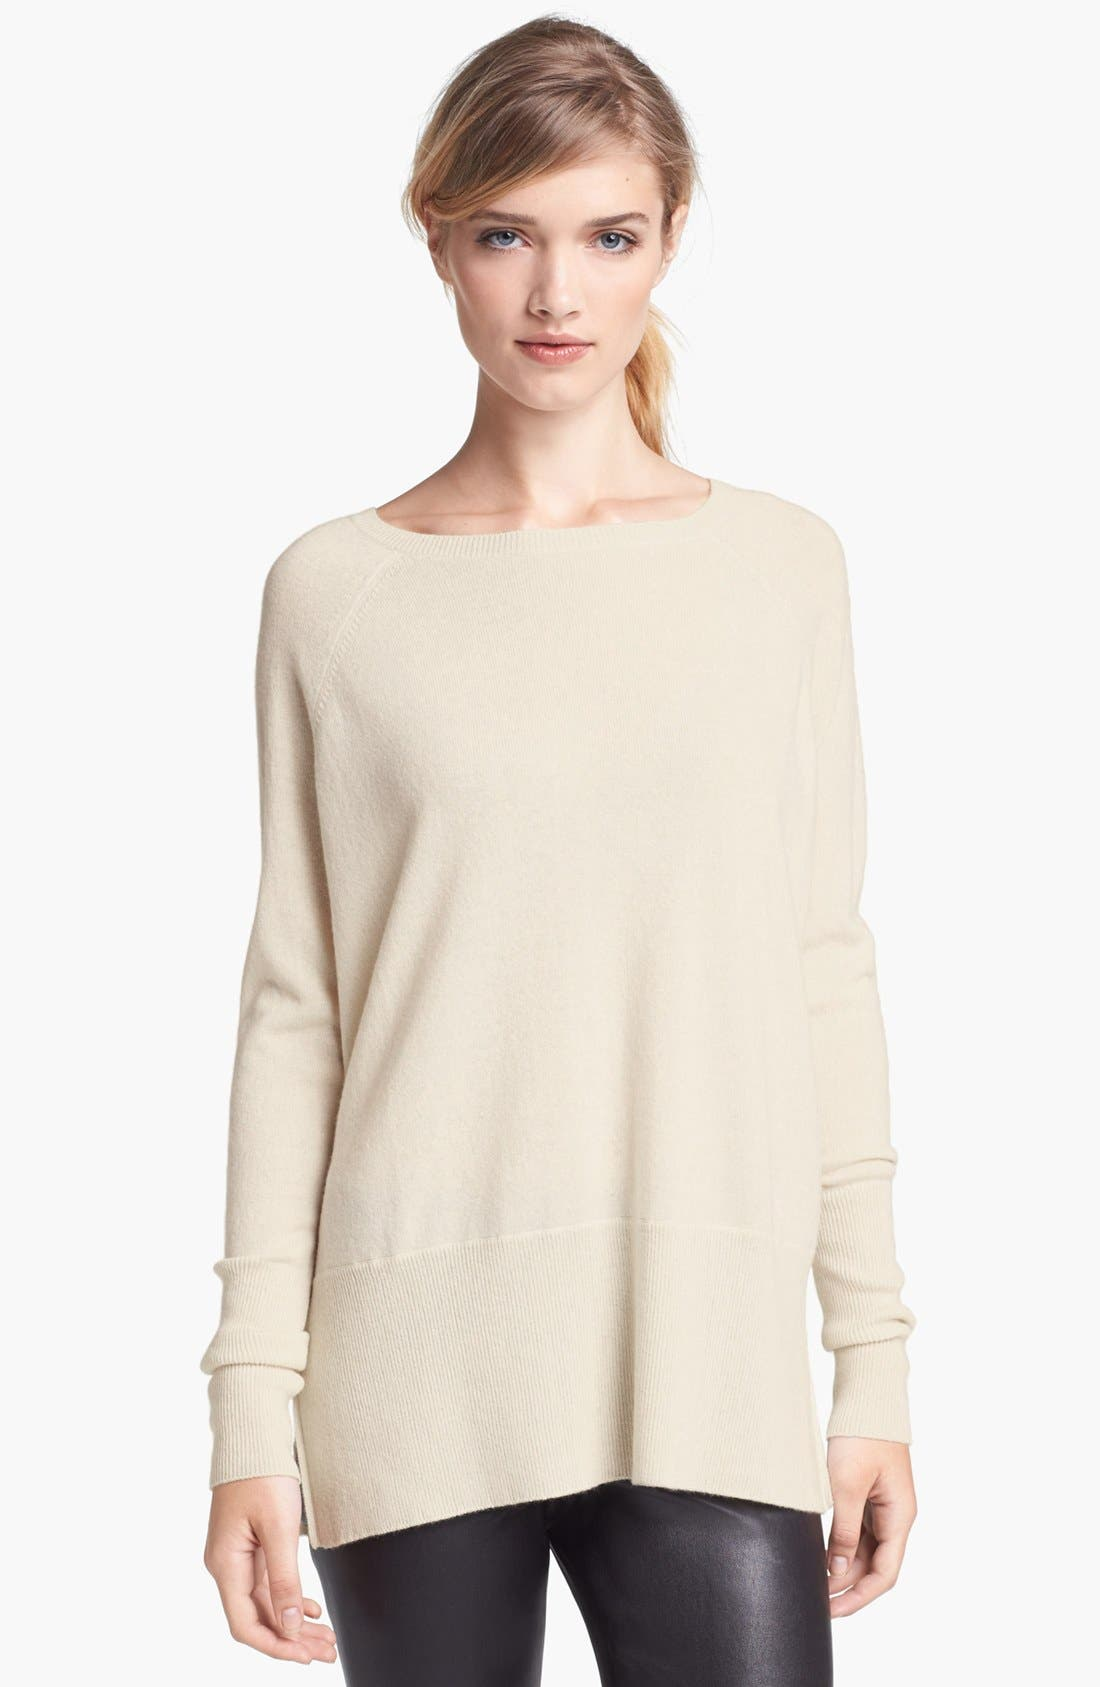 Alternate Image 1 Selected - Vince 'Square' Raglan Cashmere Sweater